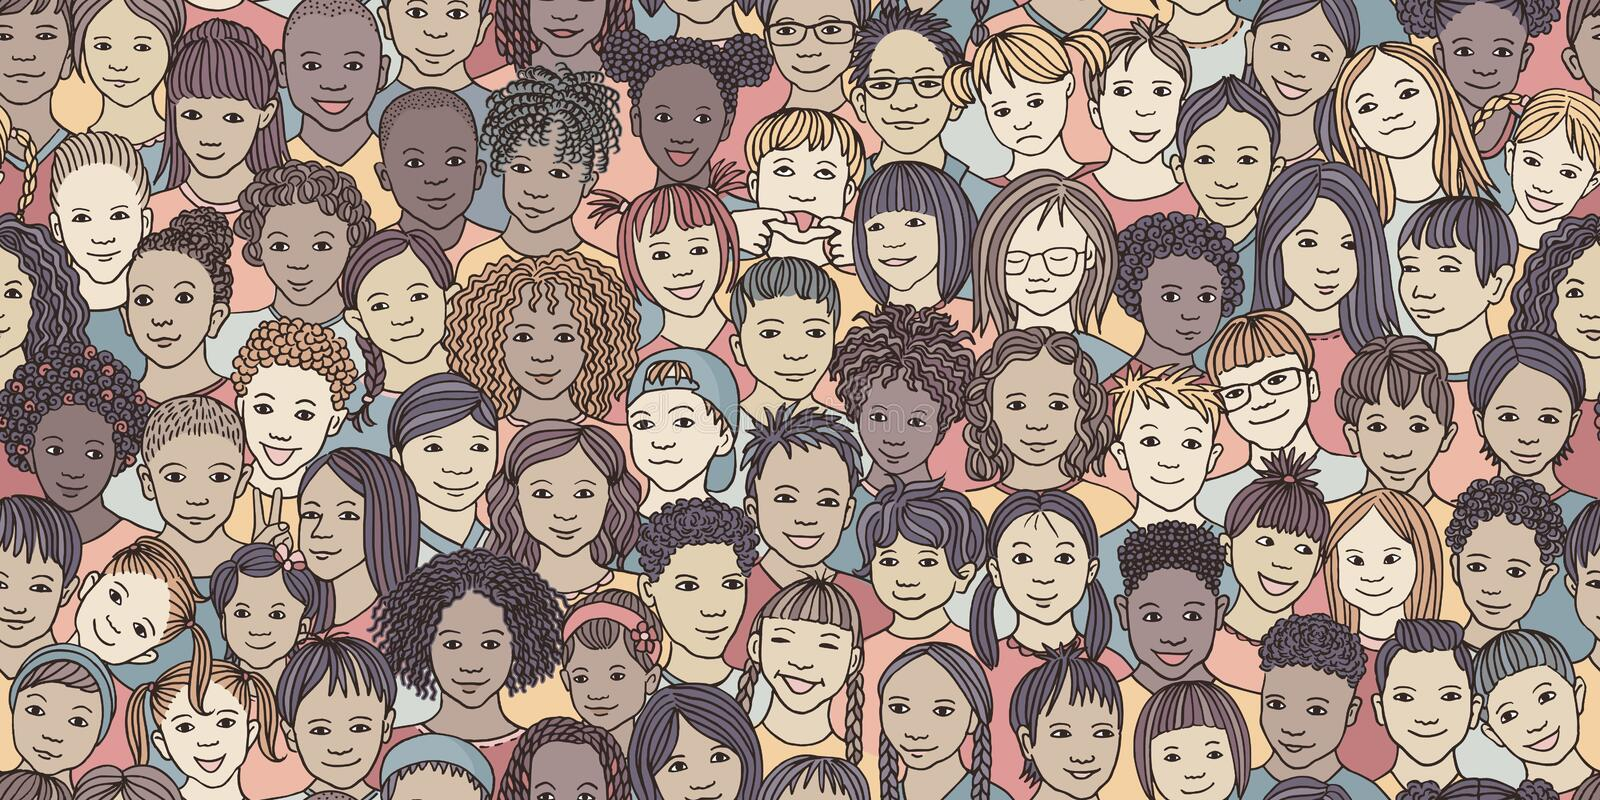 Diverse group of children, colourful illustration. Seamless banner of 70 different hand drawn kids` faces, kids and teens of diverse ethnicity royalty free illustration